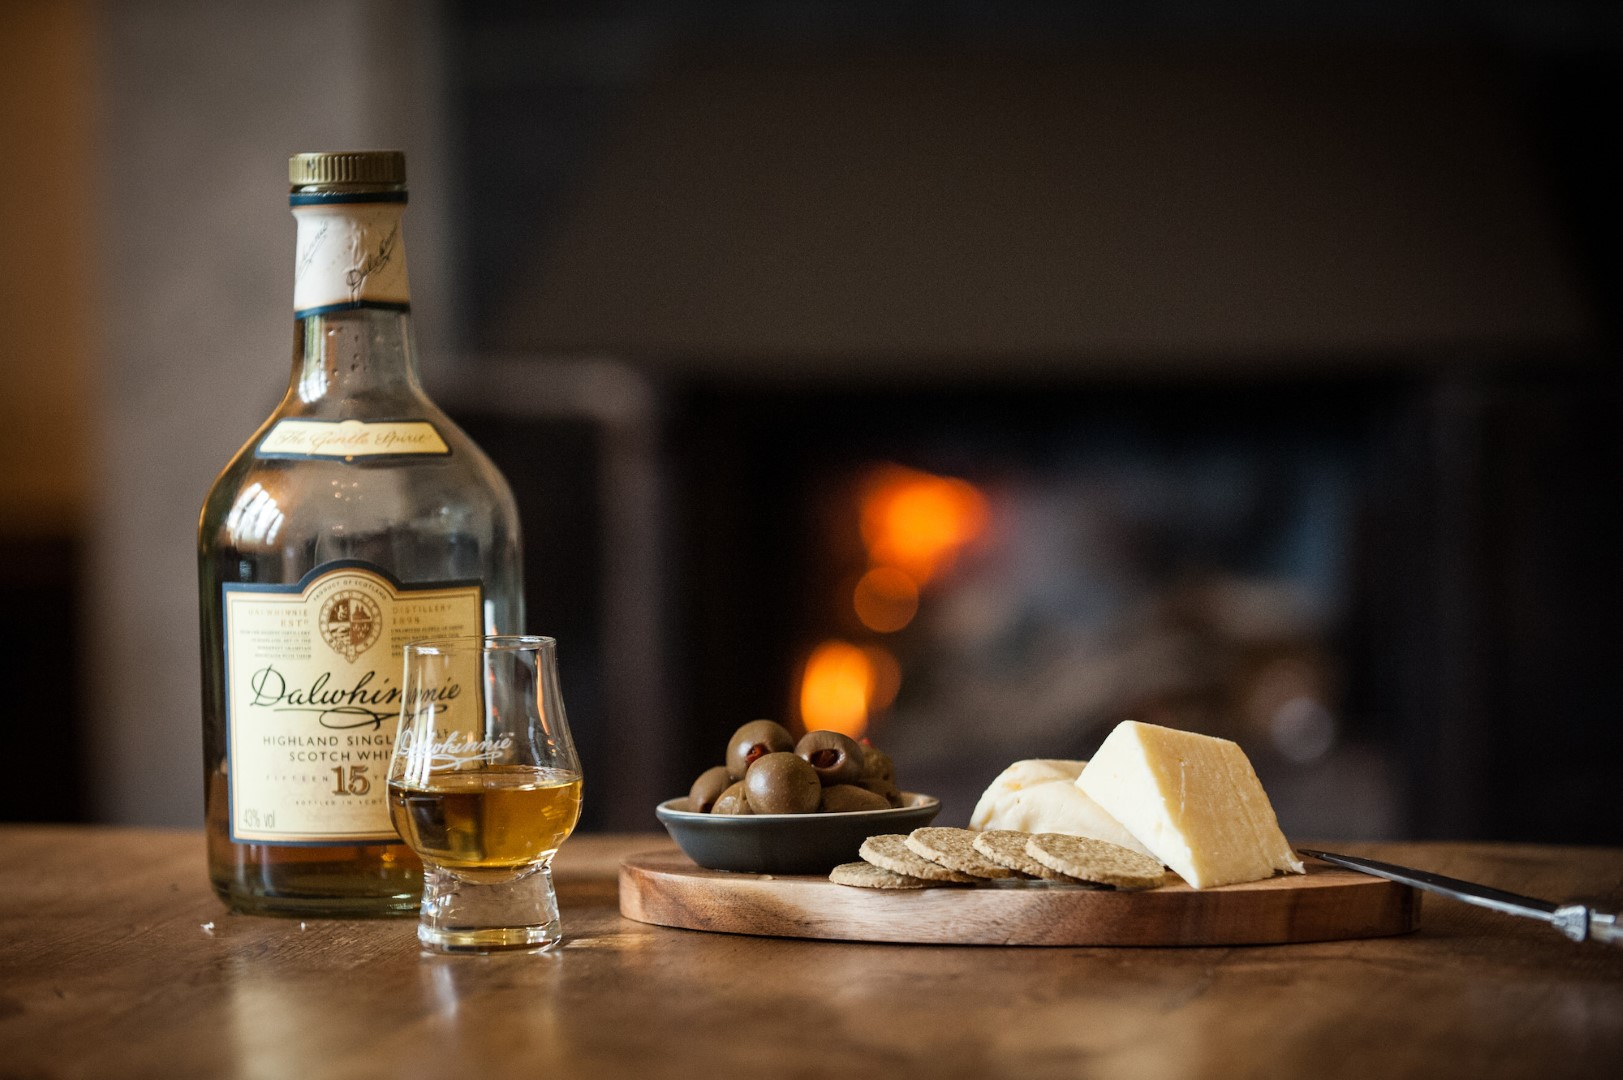 Dalwhinnie whisky with cheese and biscuits by the fire